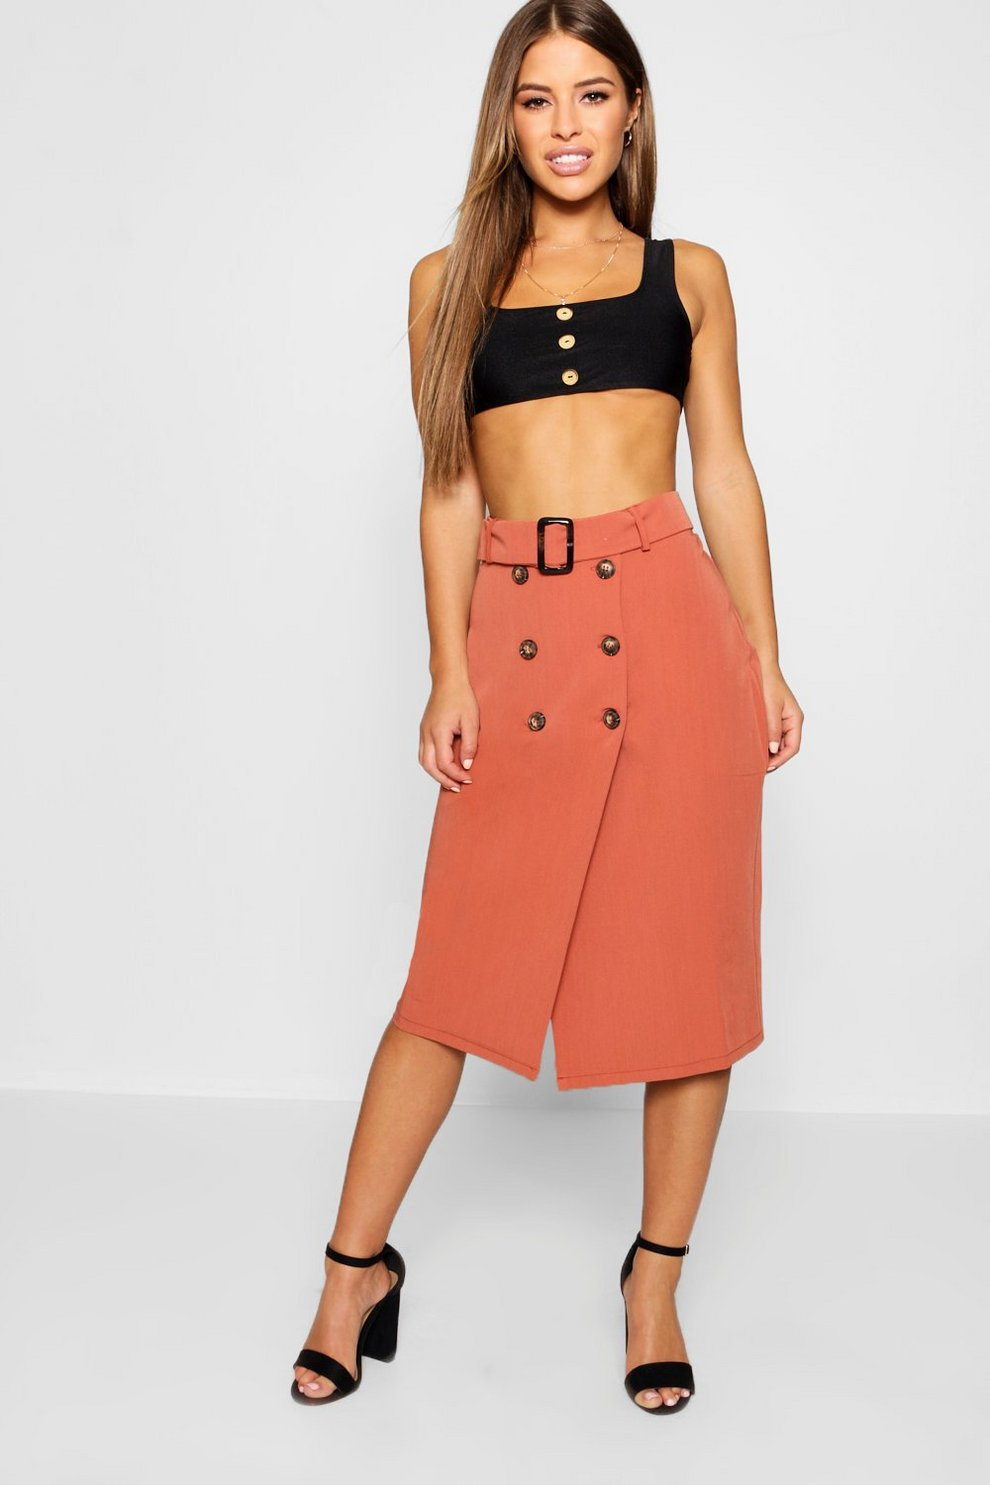 a9d4dc8493 Asos Pleated Midi Skirt In Floral Print – DACC